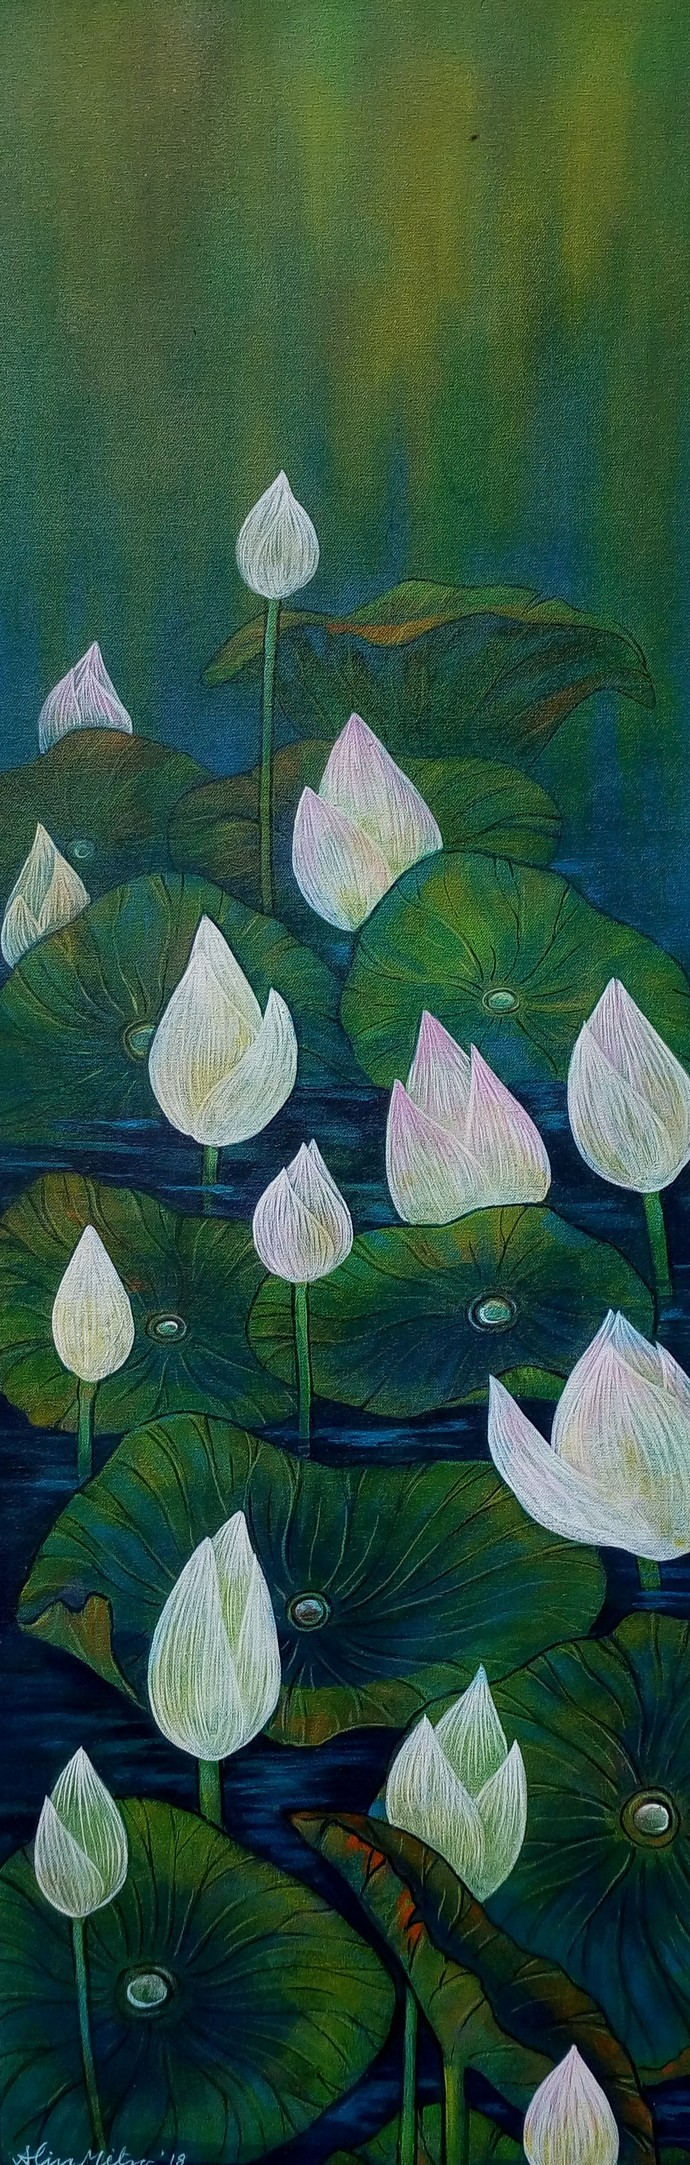 The Vartical Beauty 33 by Atin Mitra, Traditional Painting, Acrylic on Canvas, Green color